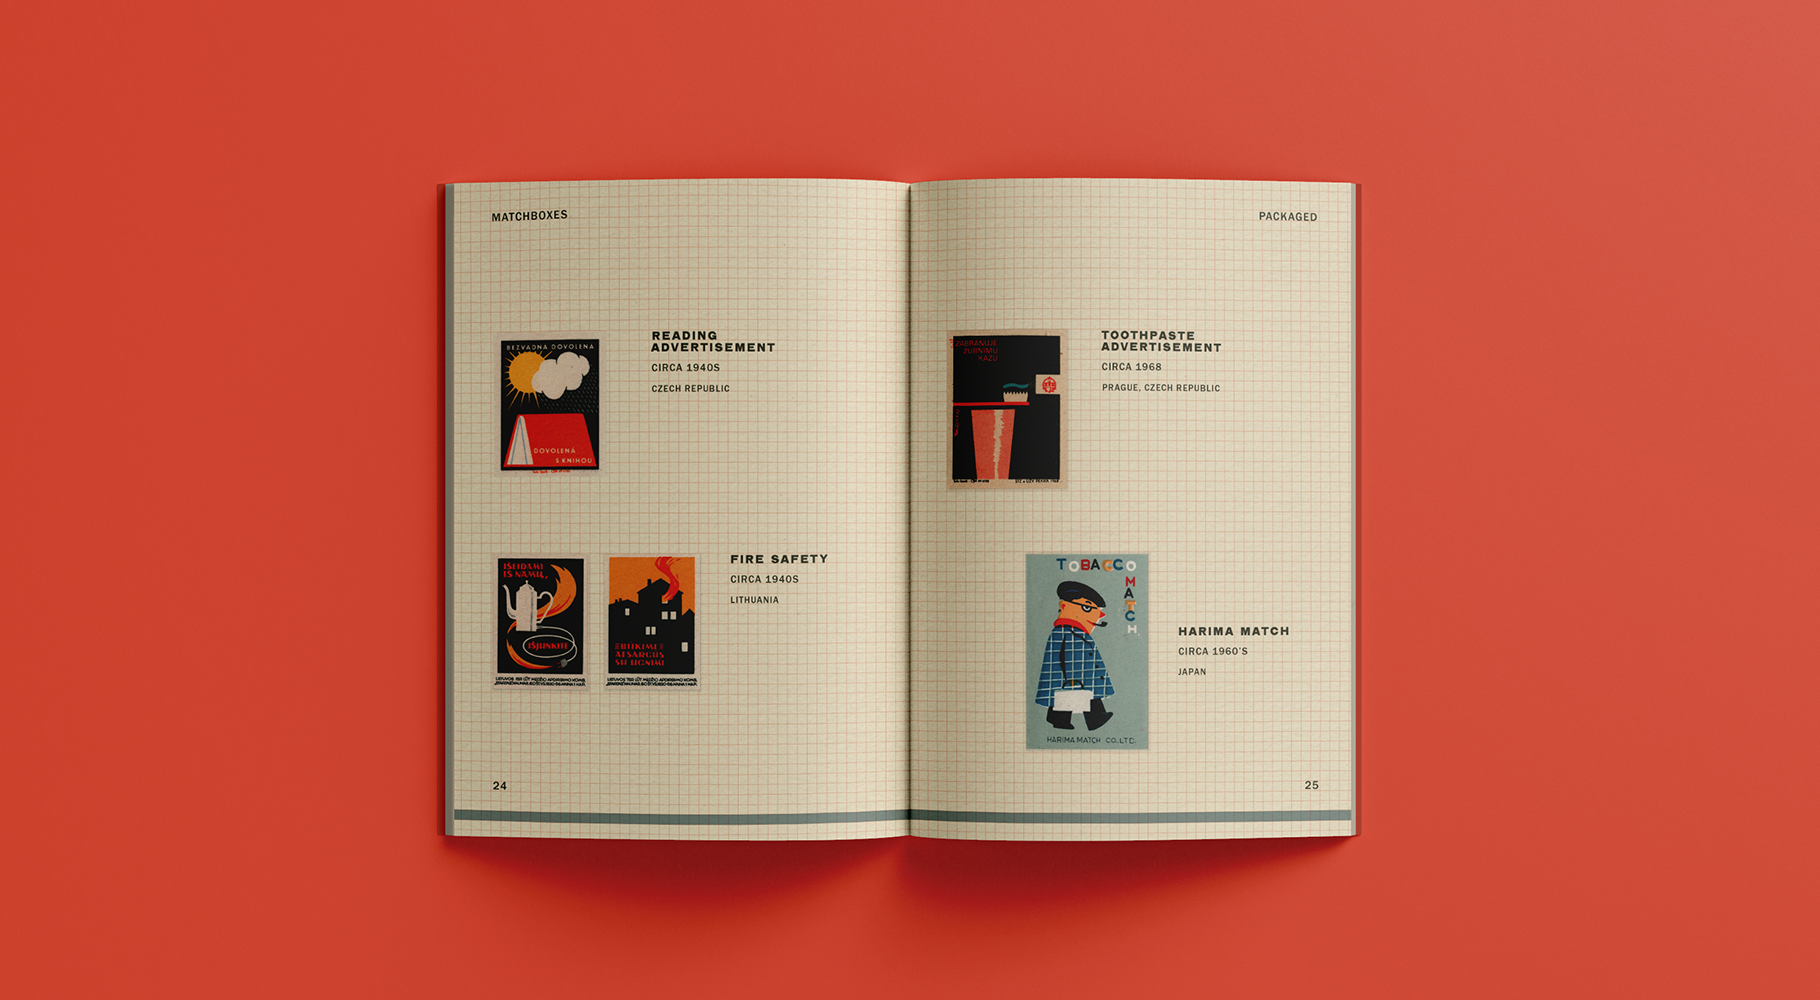 A catalogue spread featuring various vintage matchbook designs.